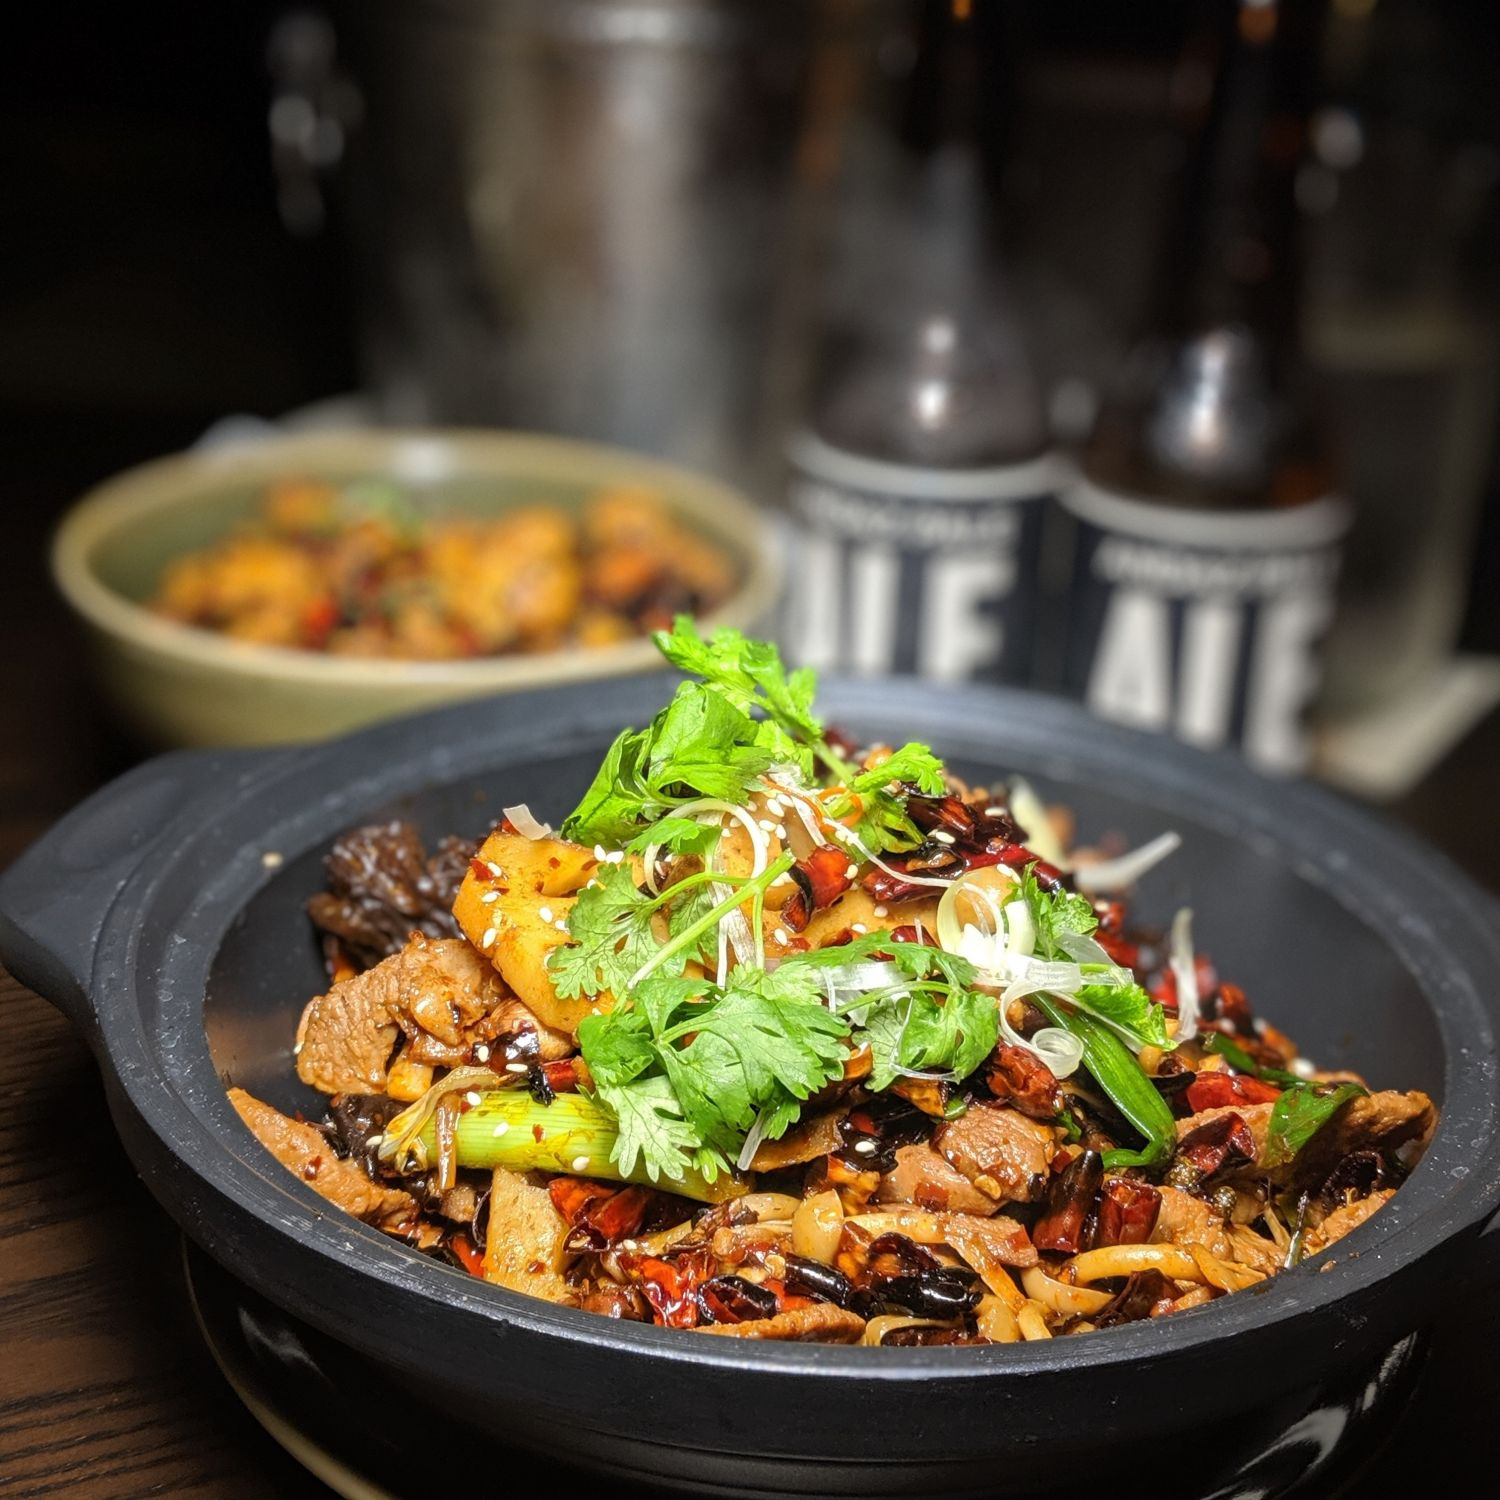 andaz singapore auntie's wok & steam Kurobuta Pork Collar Large Claypot